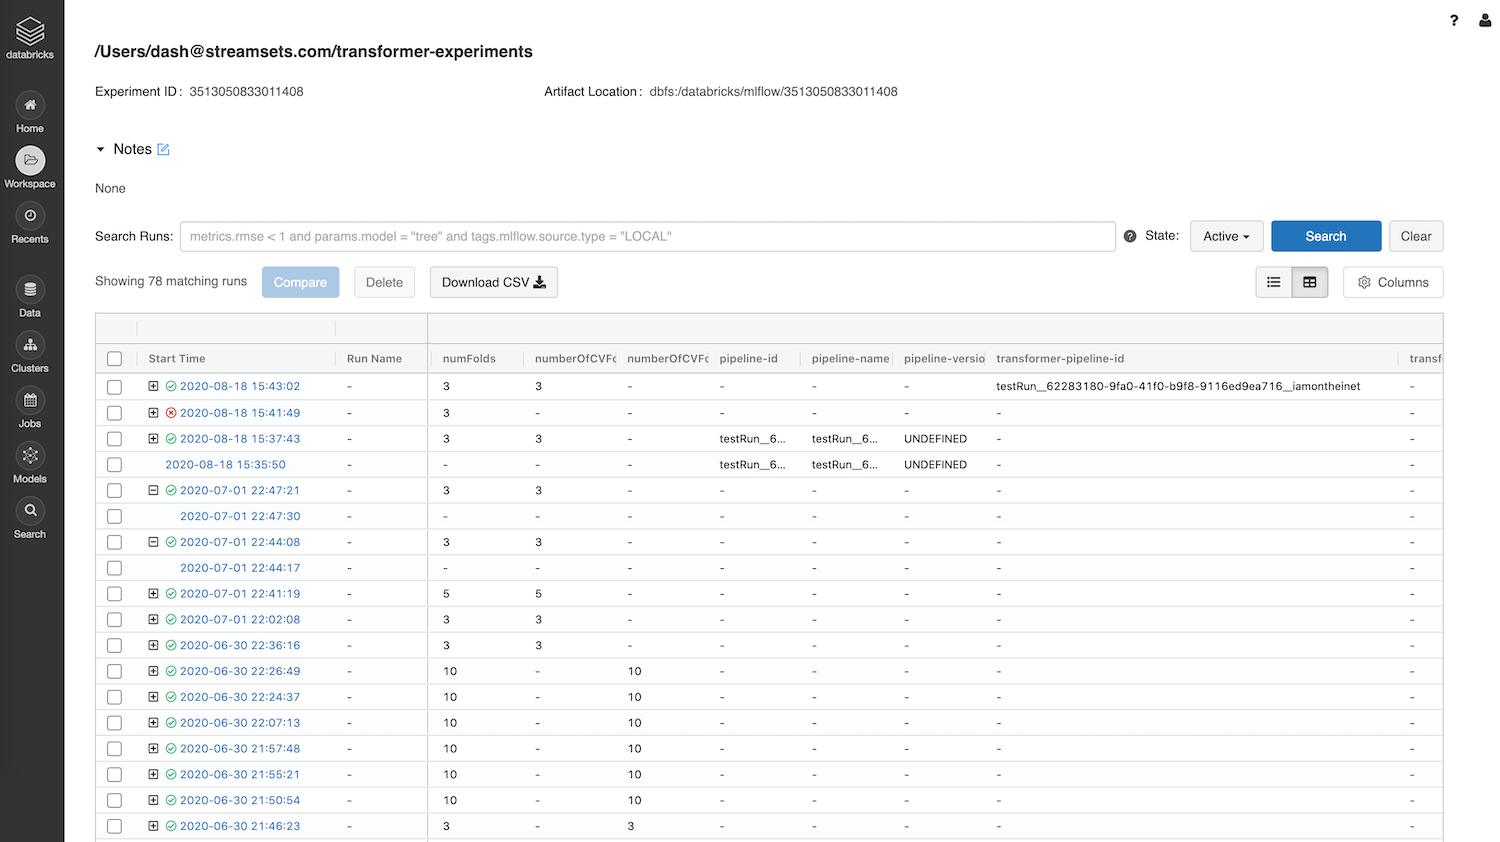 Model Experiments, Tracking and Registration using MLflow on StreamSets and Databricks